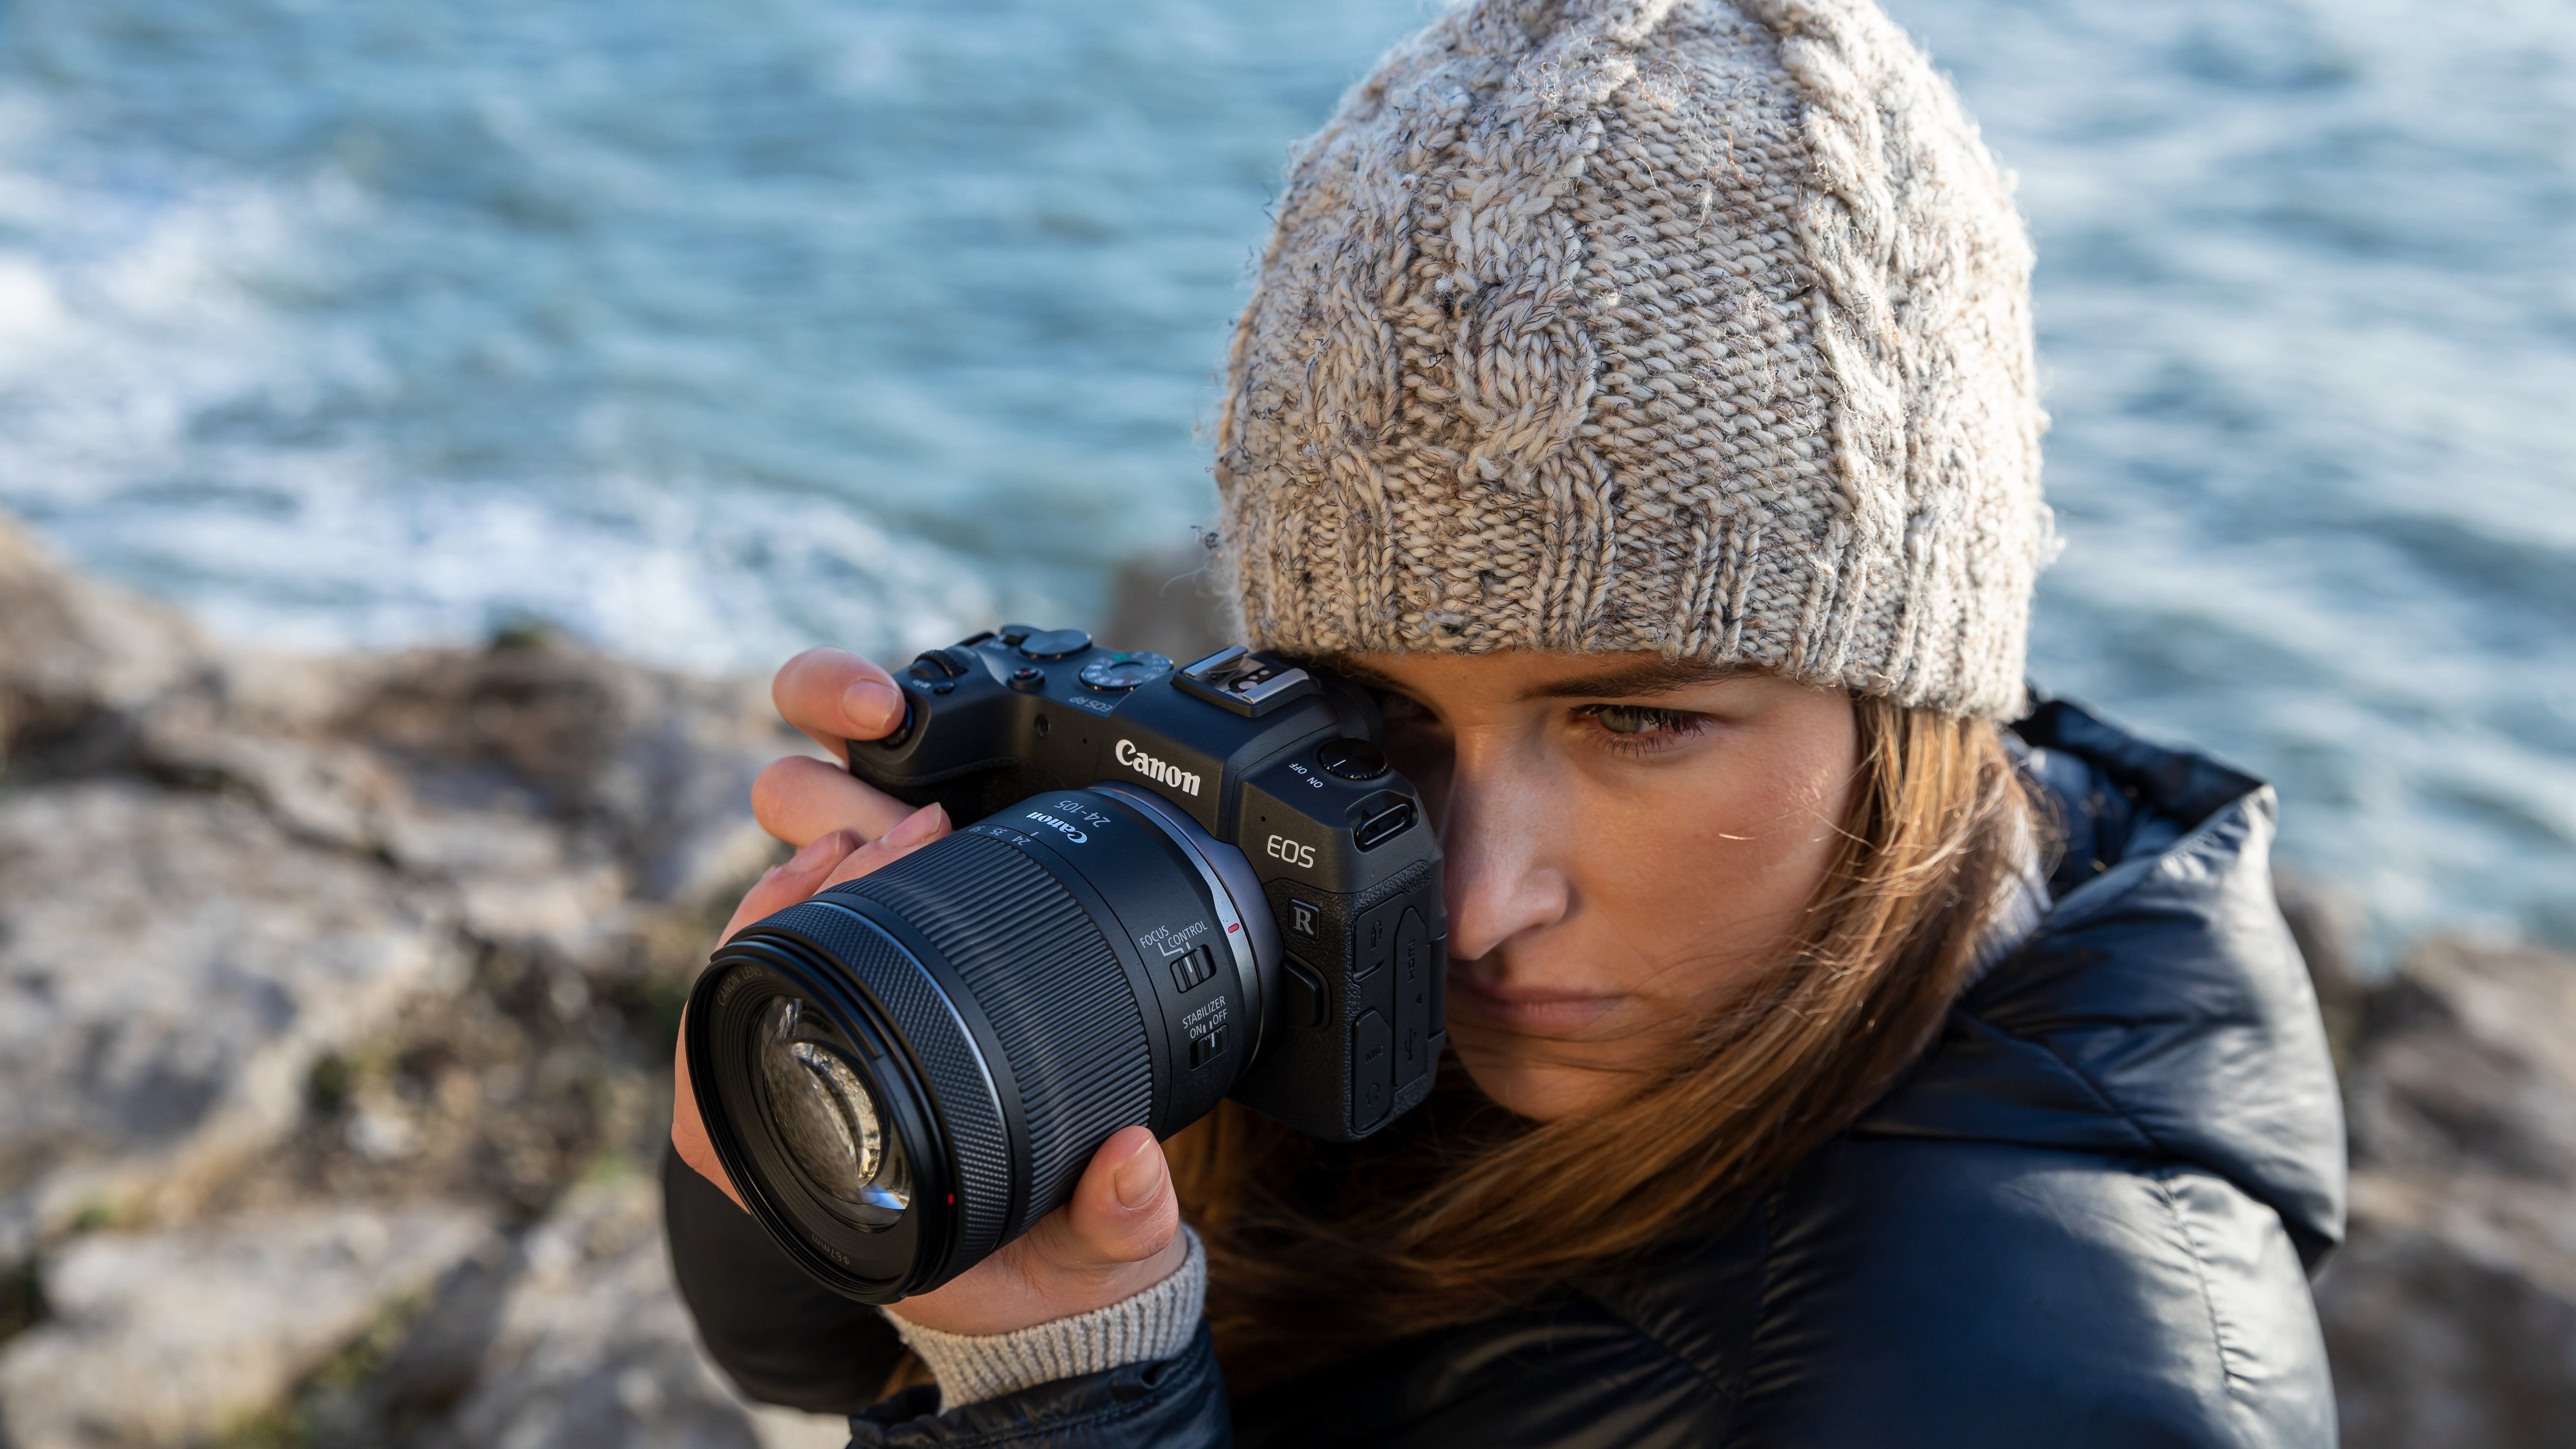 Canon RF 24-105mm F4-7.1 IS STM with on EOS RP being held by a lady wearing a grey beanie and blue jacket